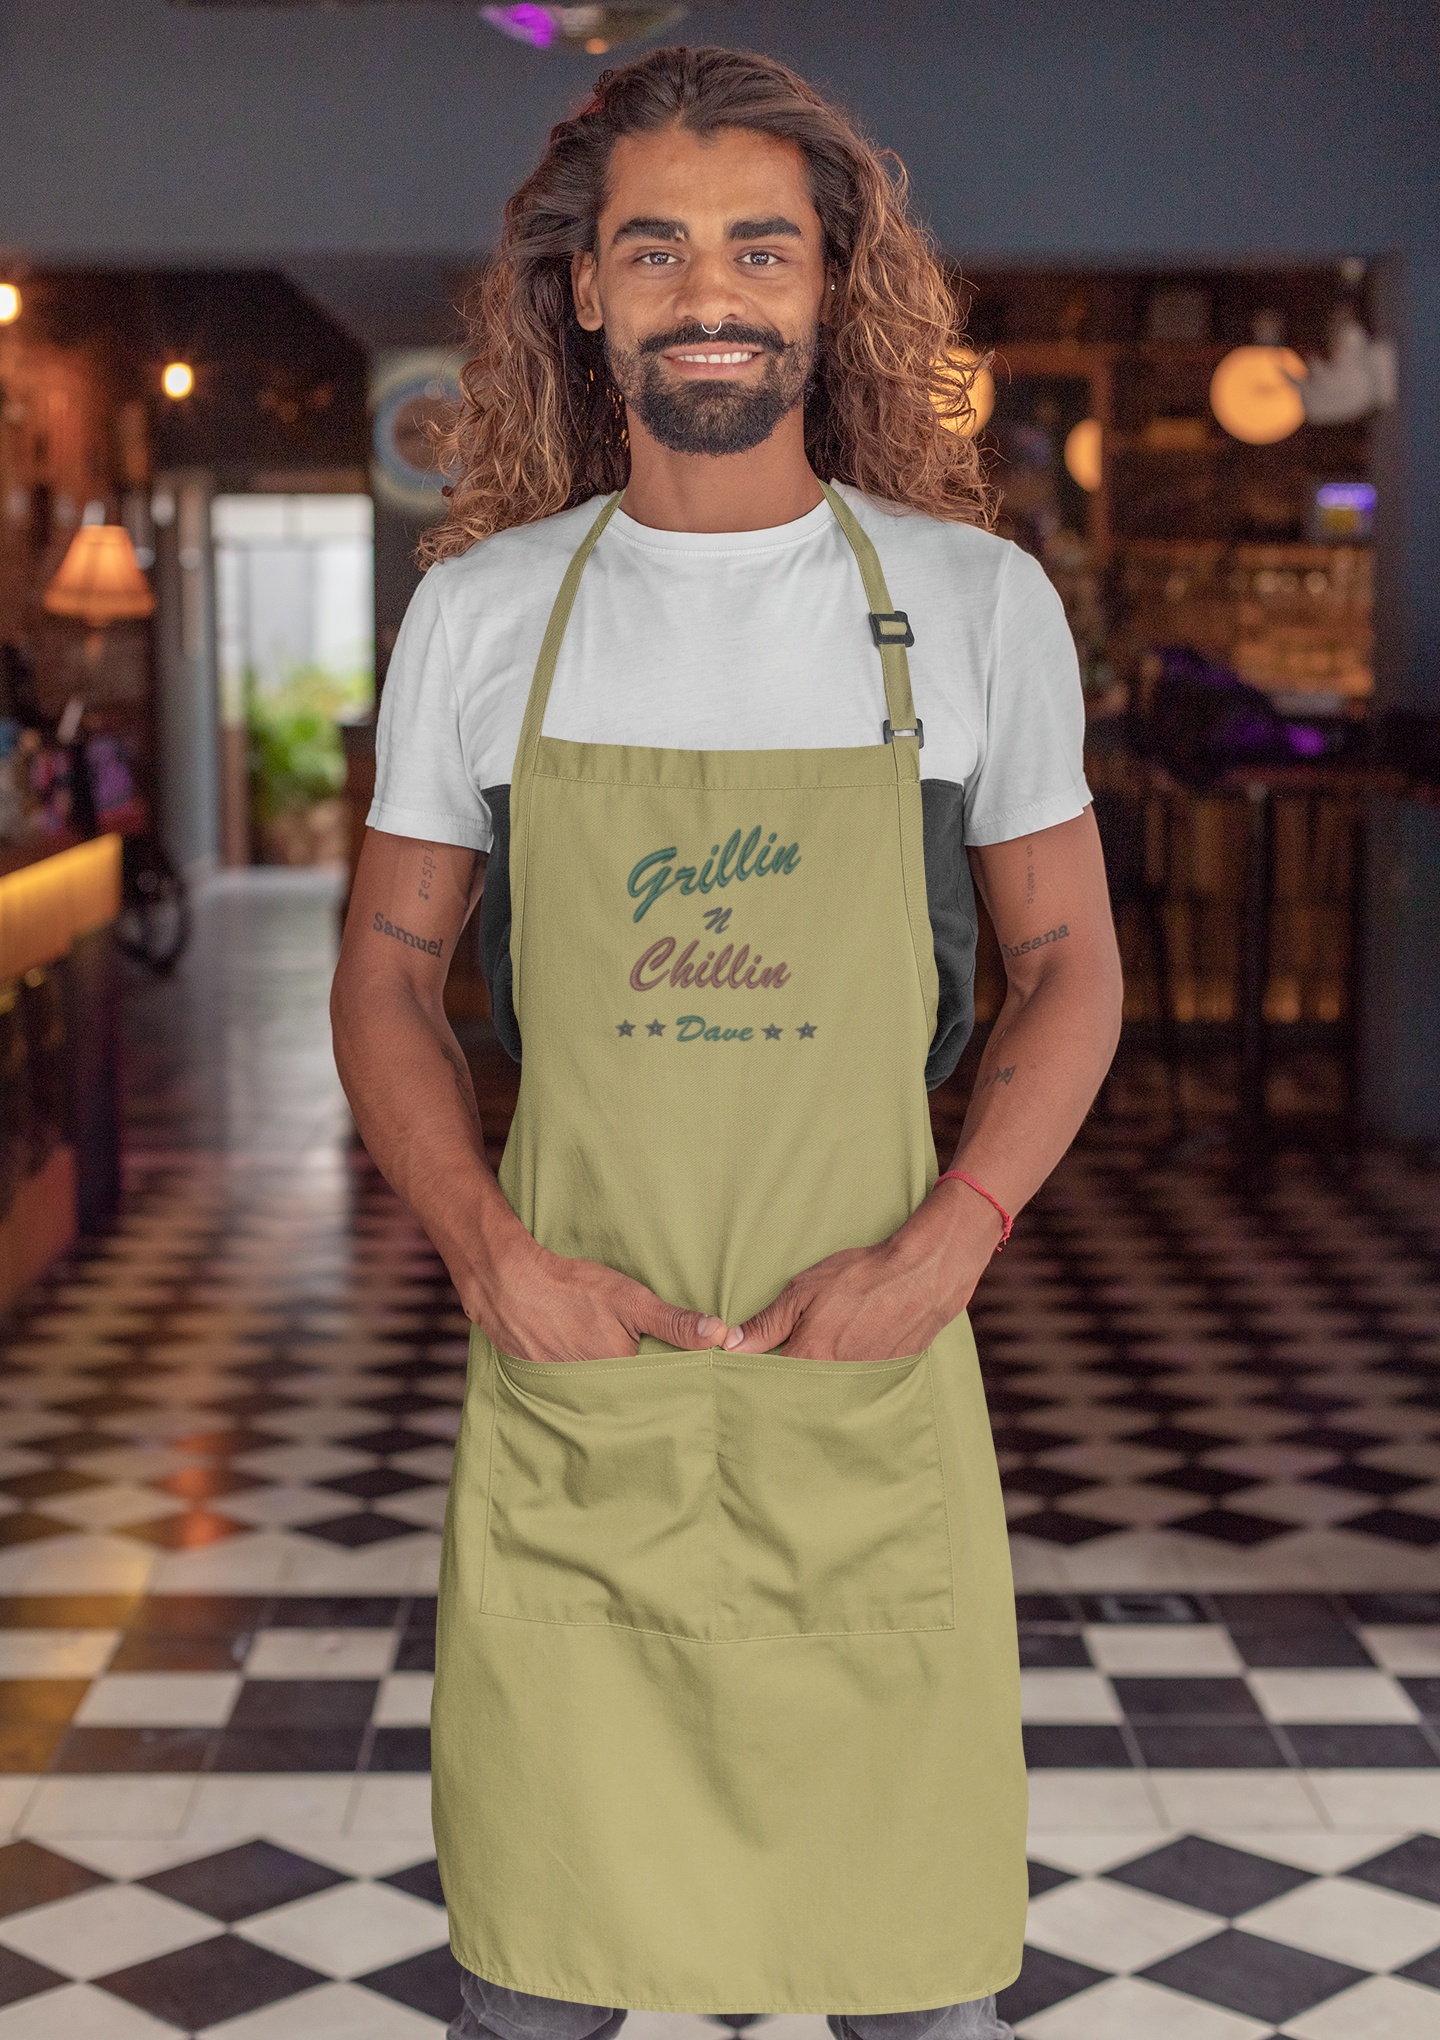 apron-mockup-featuring-a-tattooed-man-wi